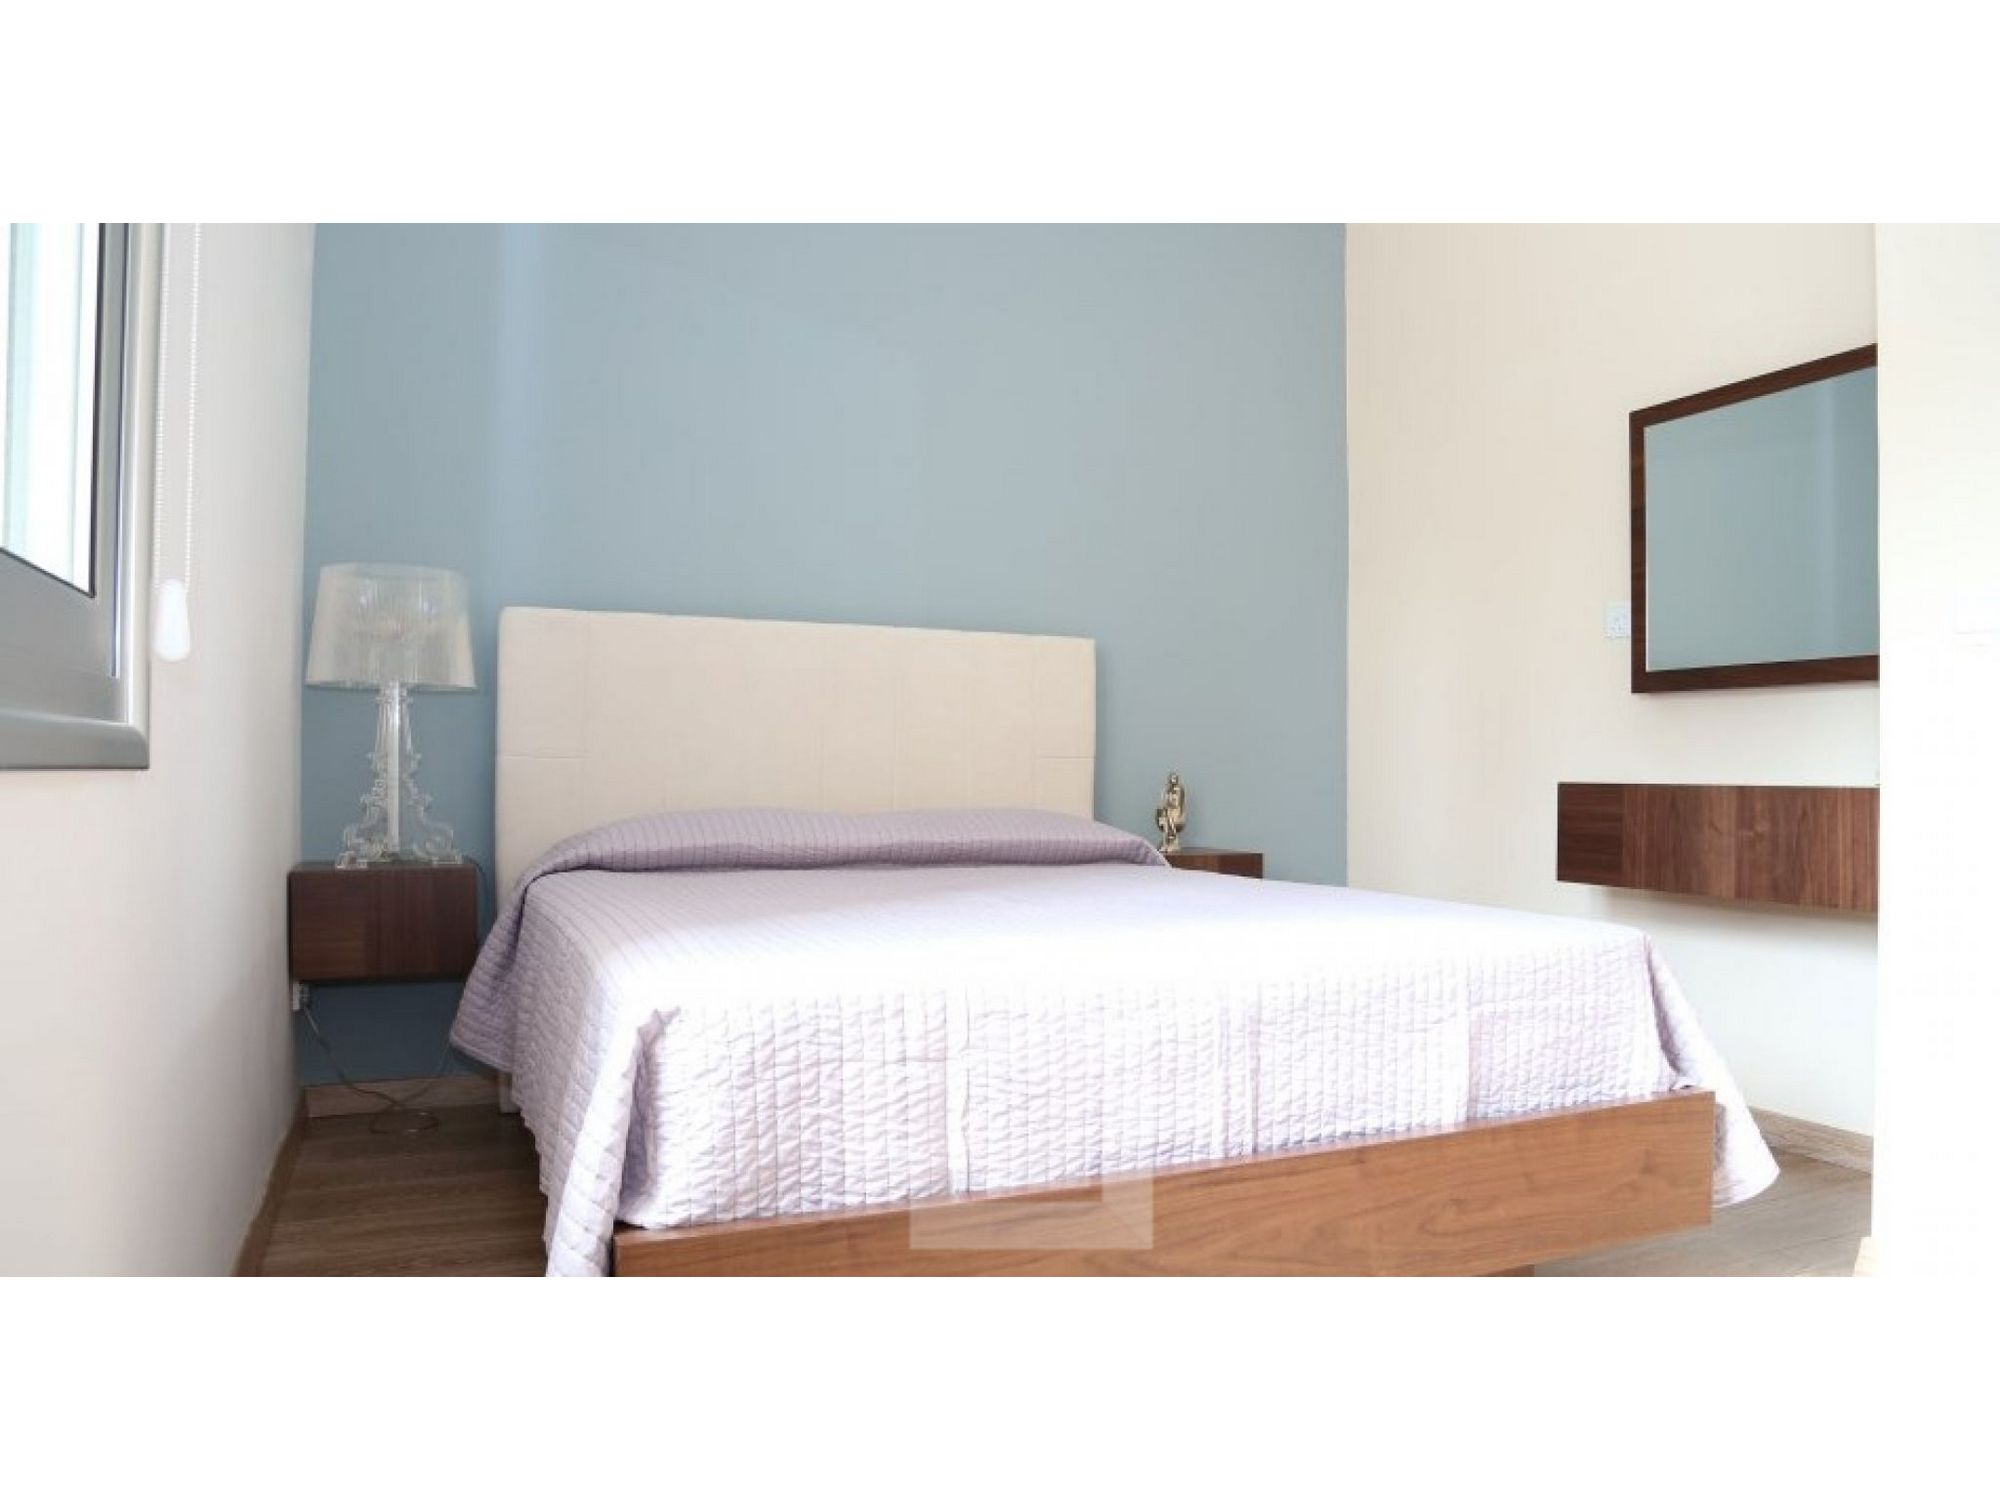 For Sale 3 Bedroom Seafront Apartment In Limassol Eur